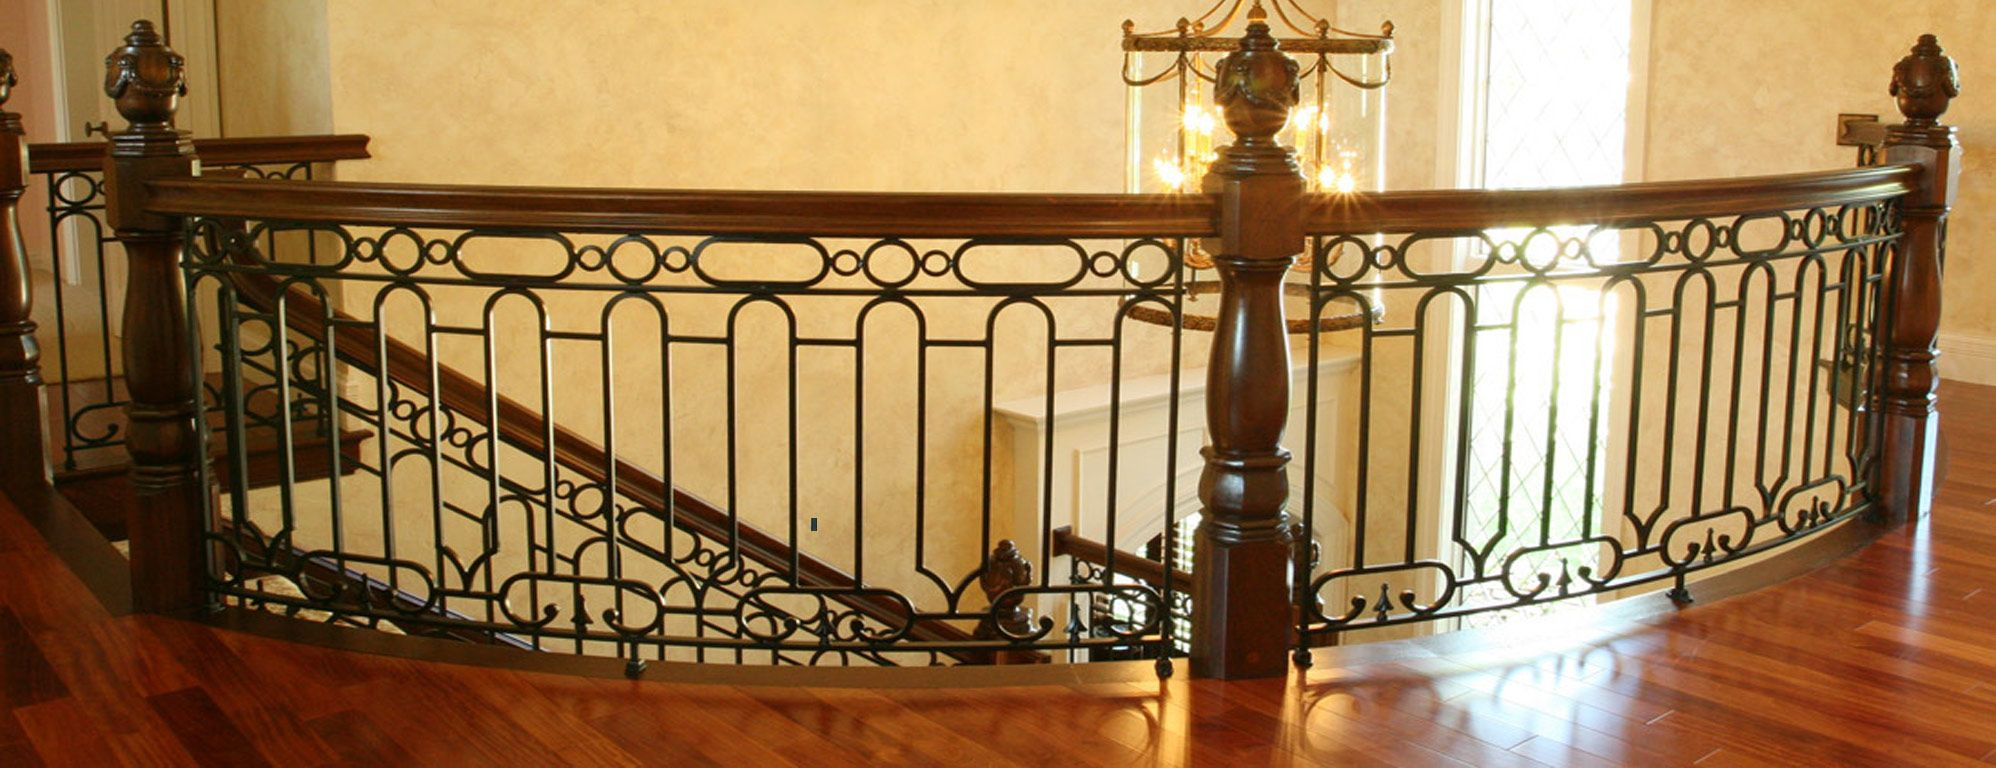 Image of Wrought Iron Balusters Picture